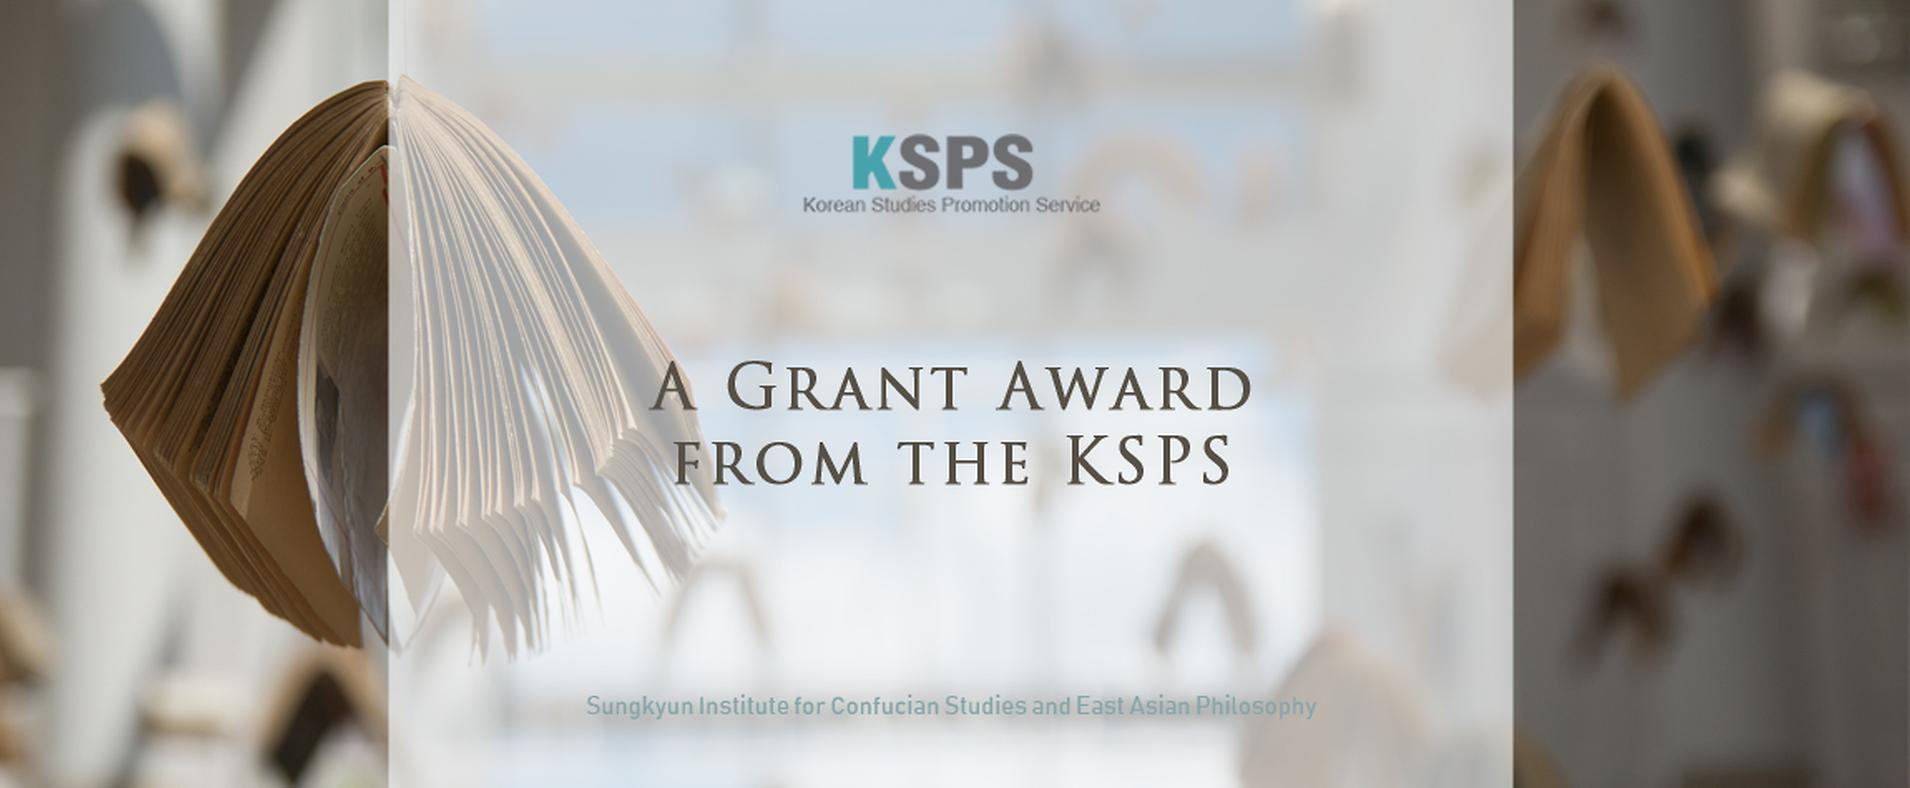 A Grant Award from KSPS